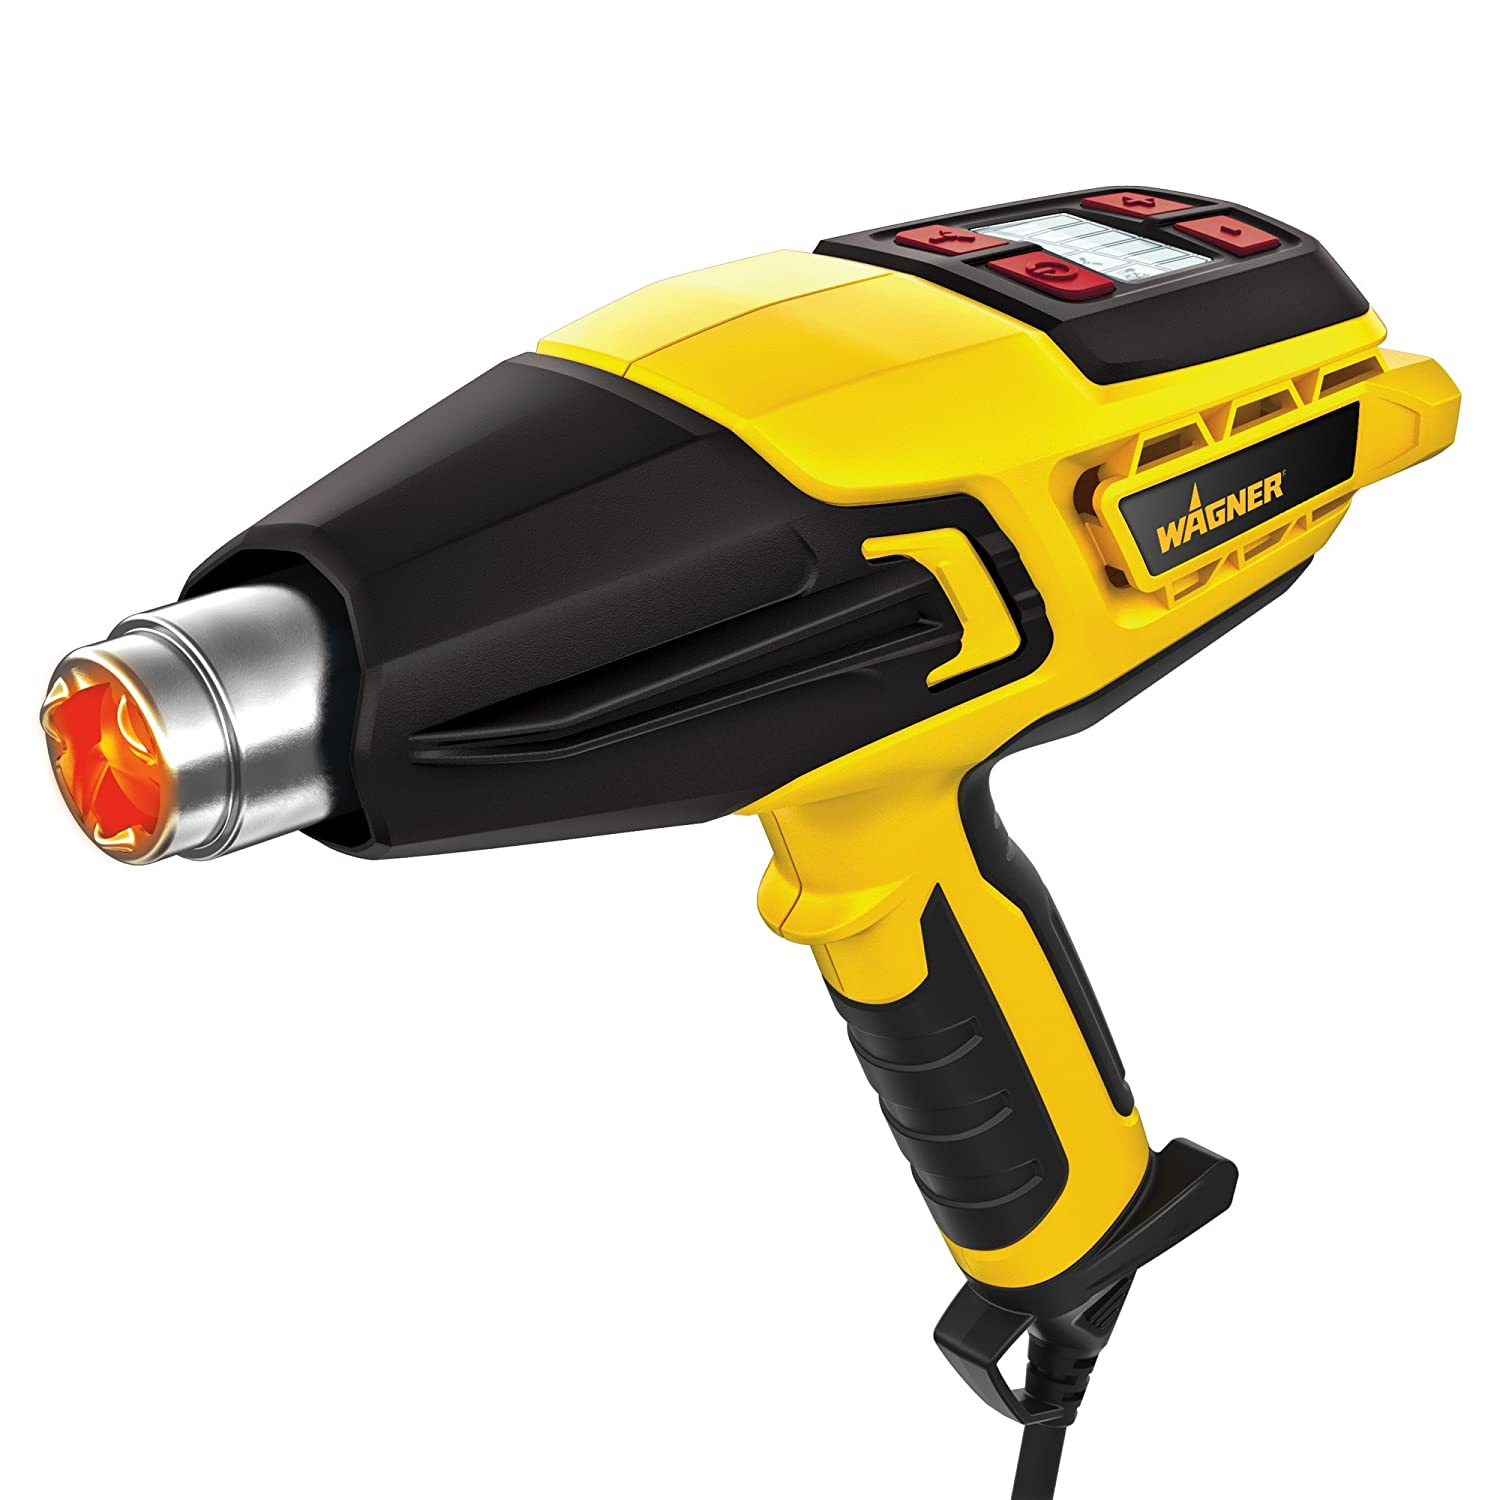 Wagner 0503063 Furno 500 Variable-Temp Heat Gun, 12 Temperature Settings Ranging 150ᵒF-1200ᵒF